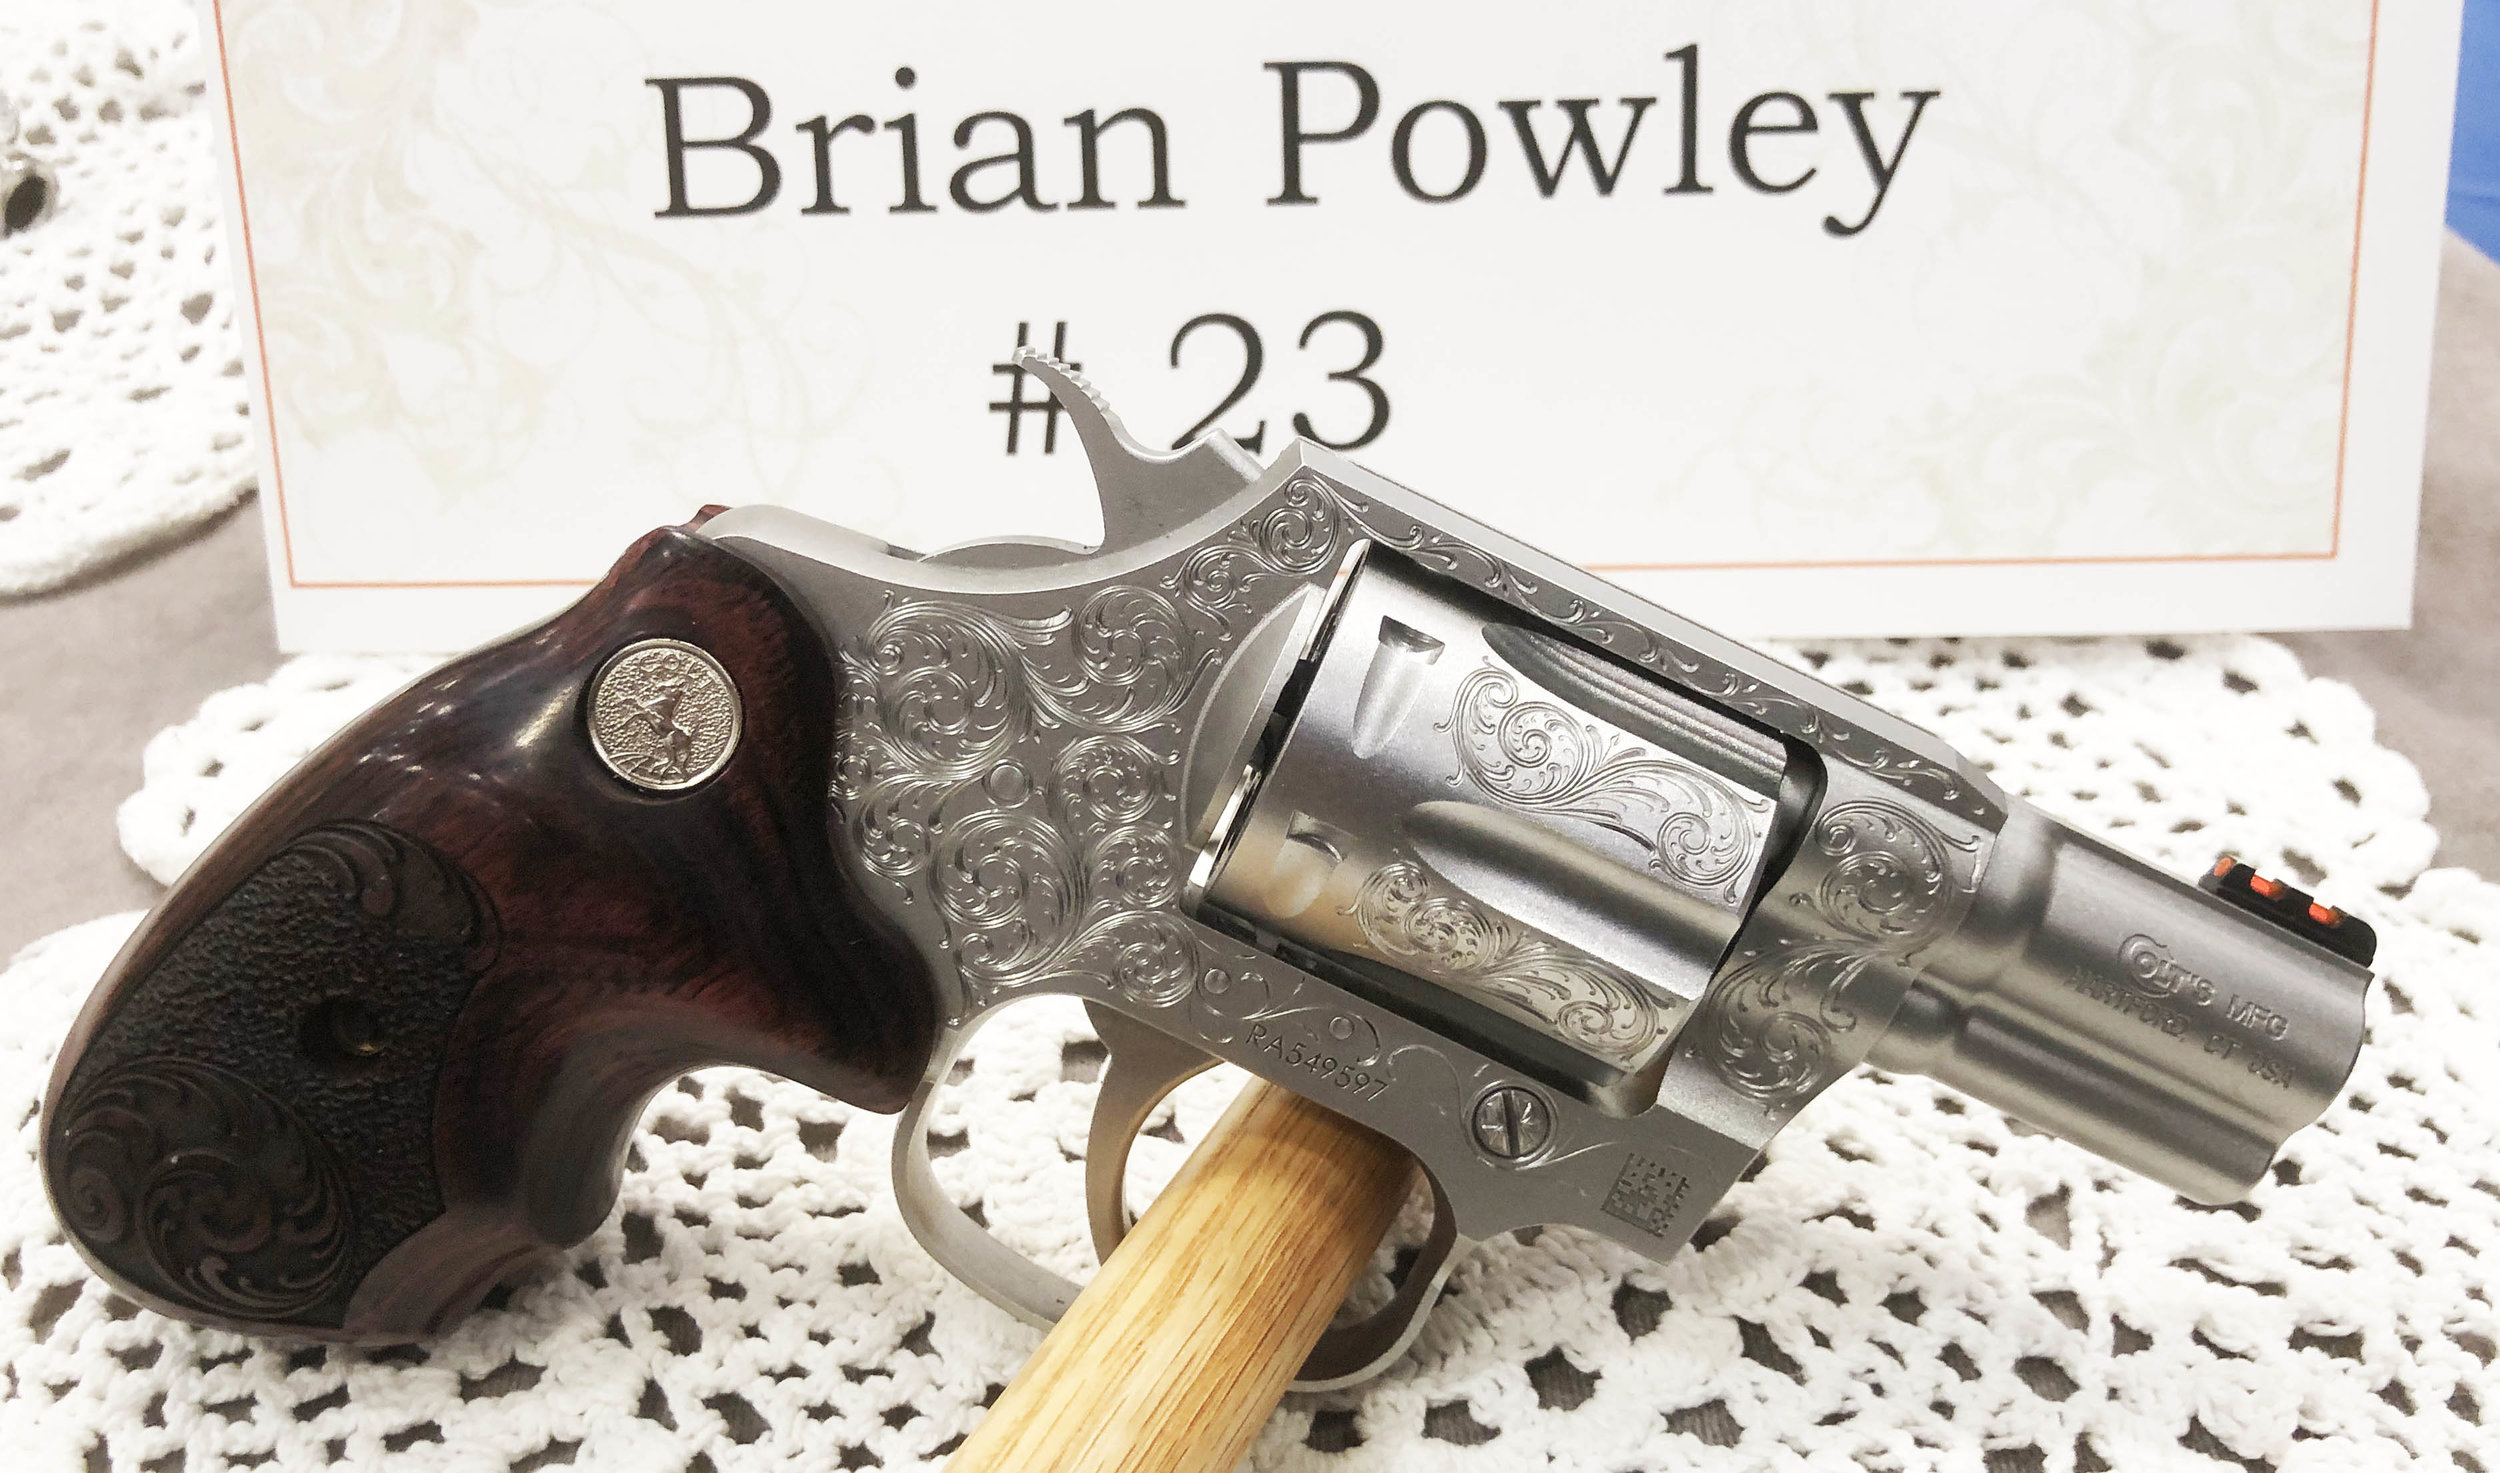 TALO project seen @ Engraver's Guild show in Las Vegas. Hand Engraved by Brian Powley